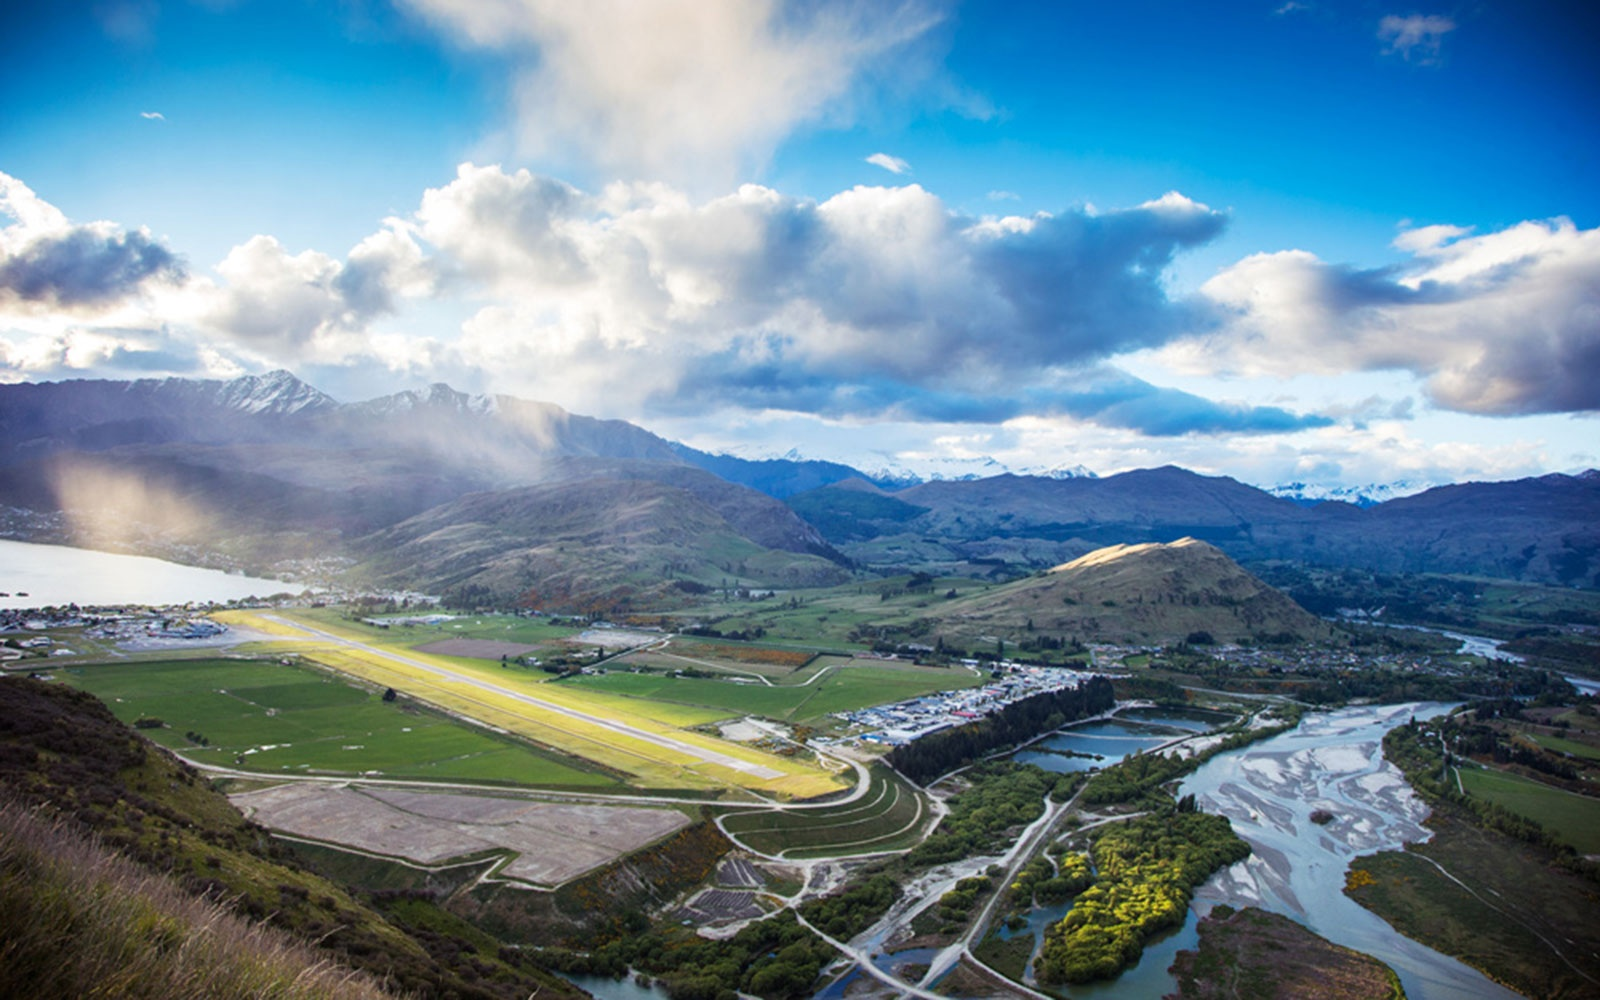 1. Queenstown Airport in New Zealand